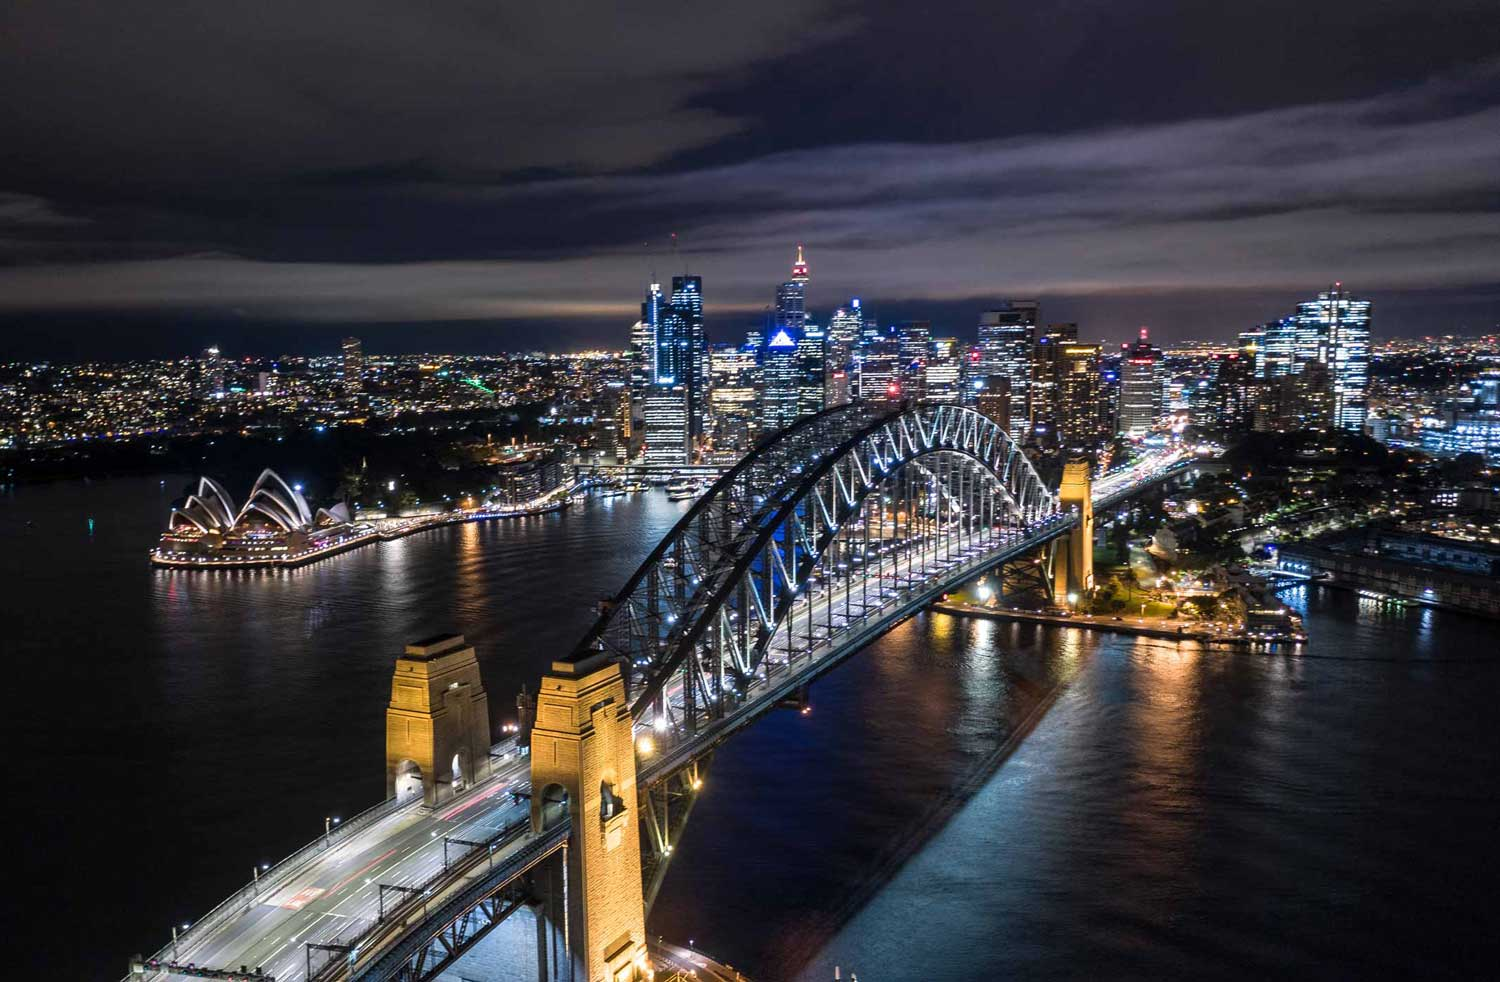 night view of Sydney harbour from a drone